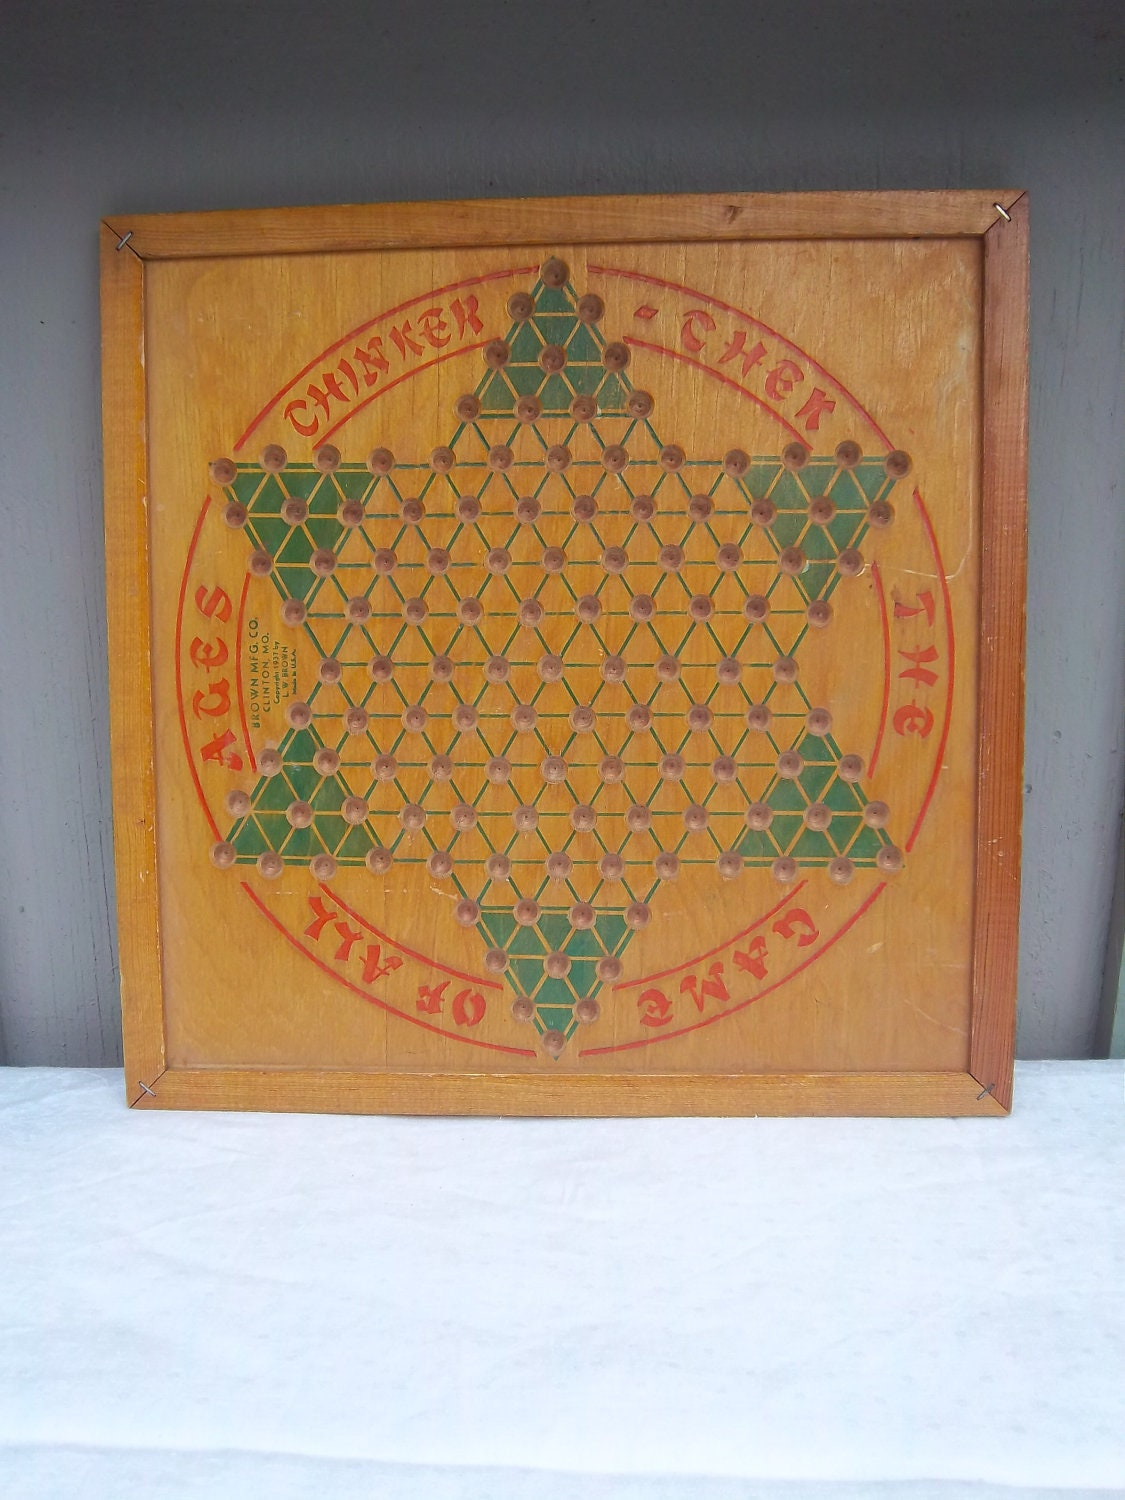 Wooden checker board wooden checkerboard in - Antique Wooden Game Board Chinese Checkers By